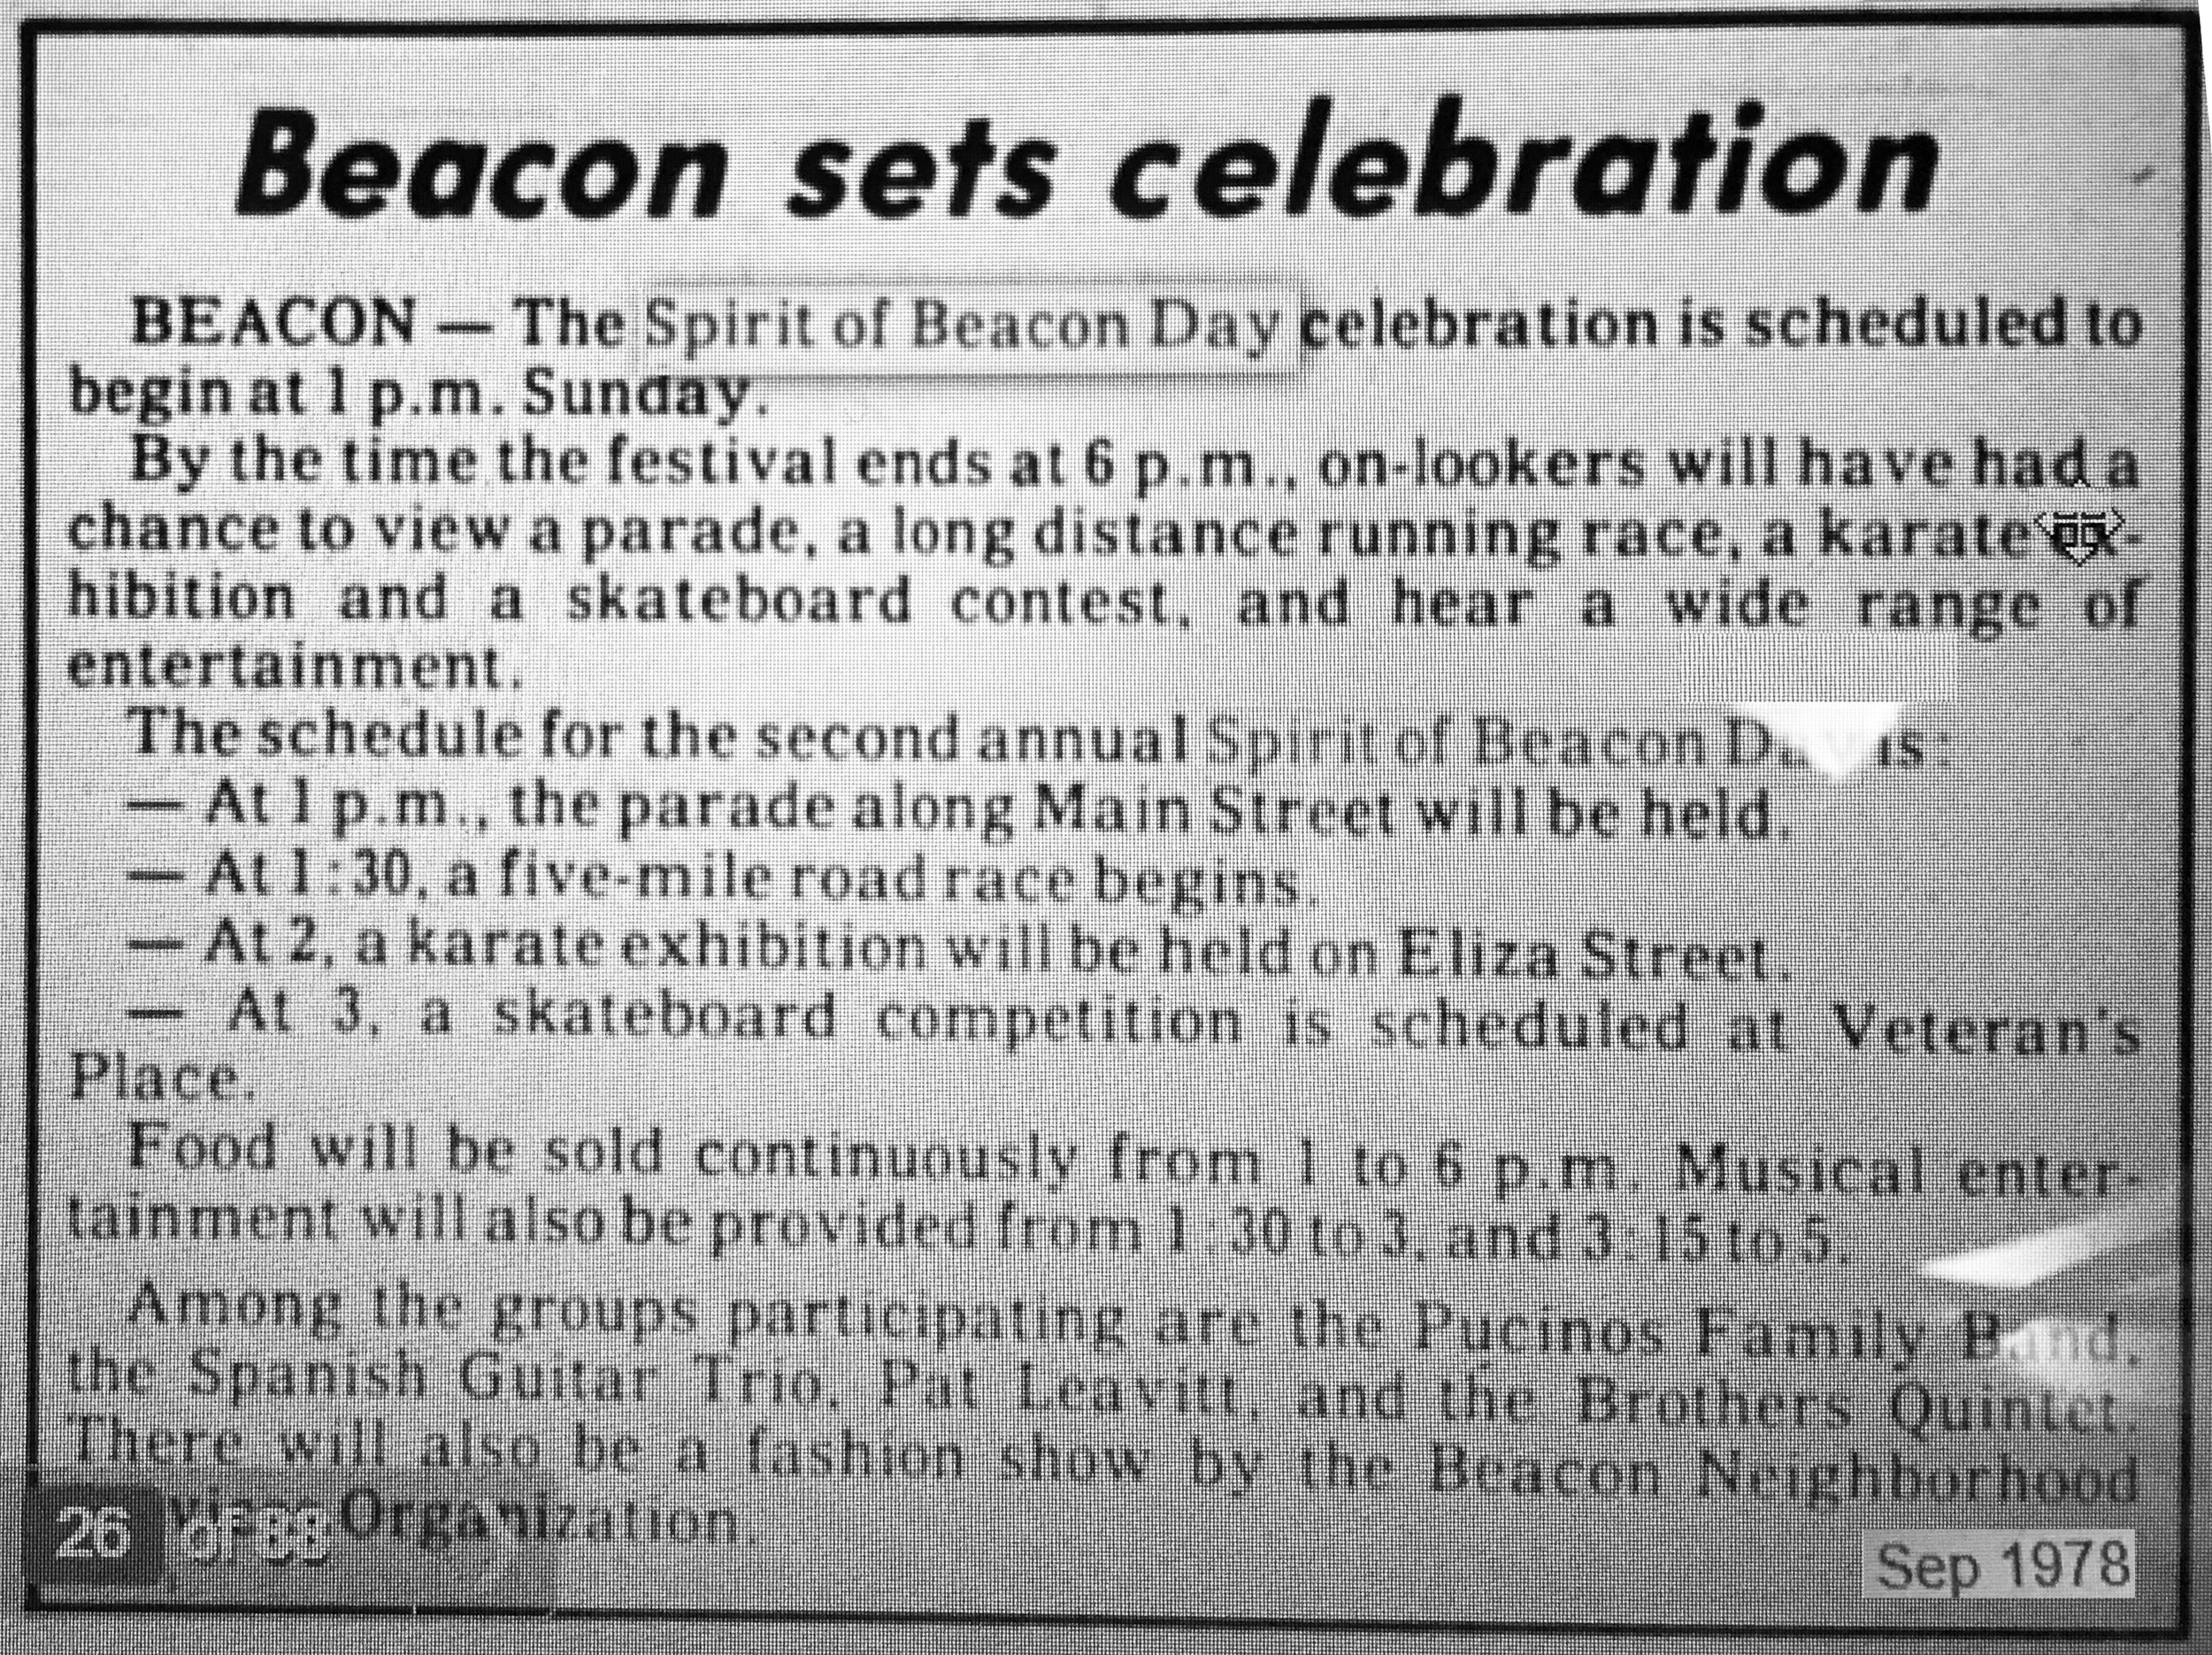 Beacon Evening News 1978, courtesy of the Beacon Historical Society